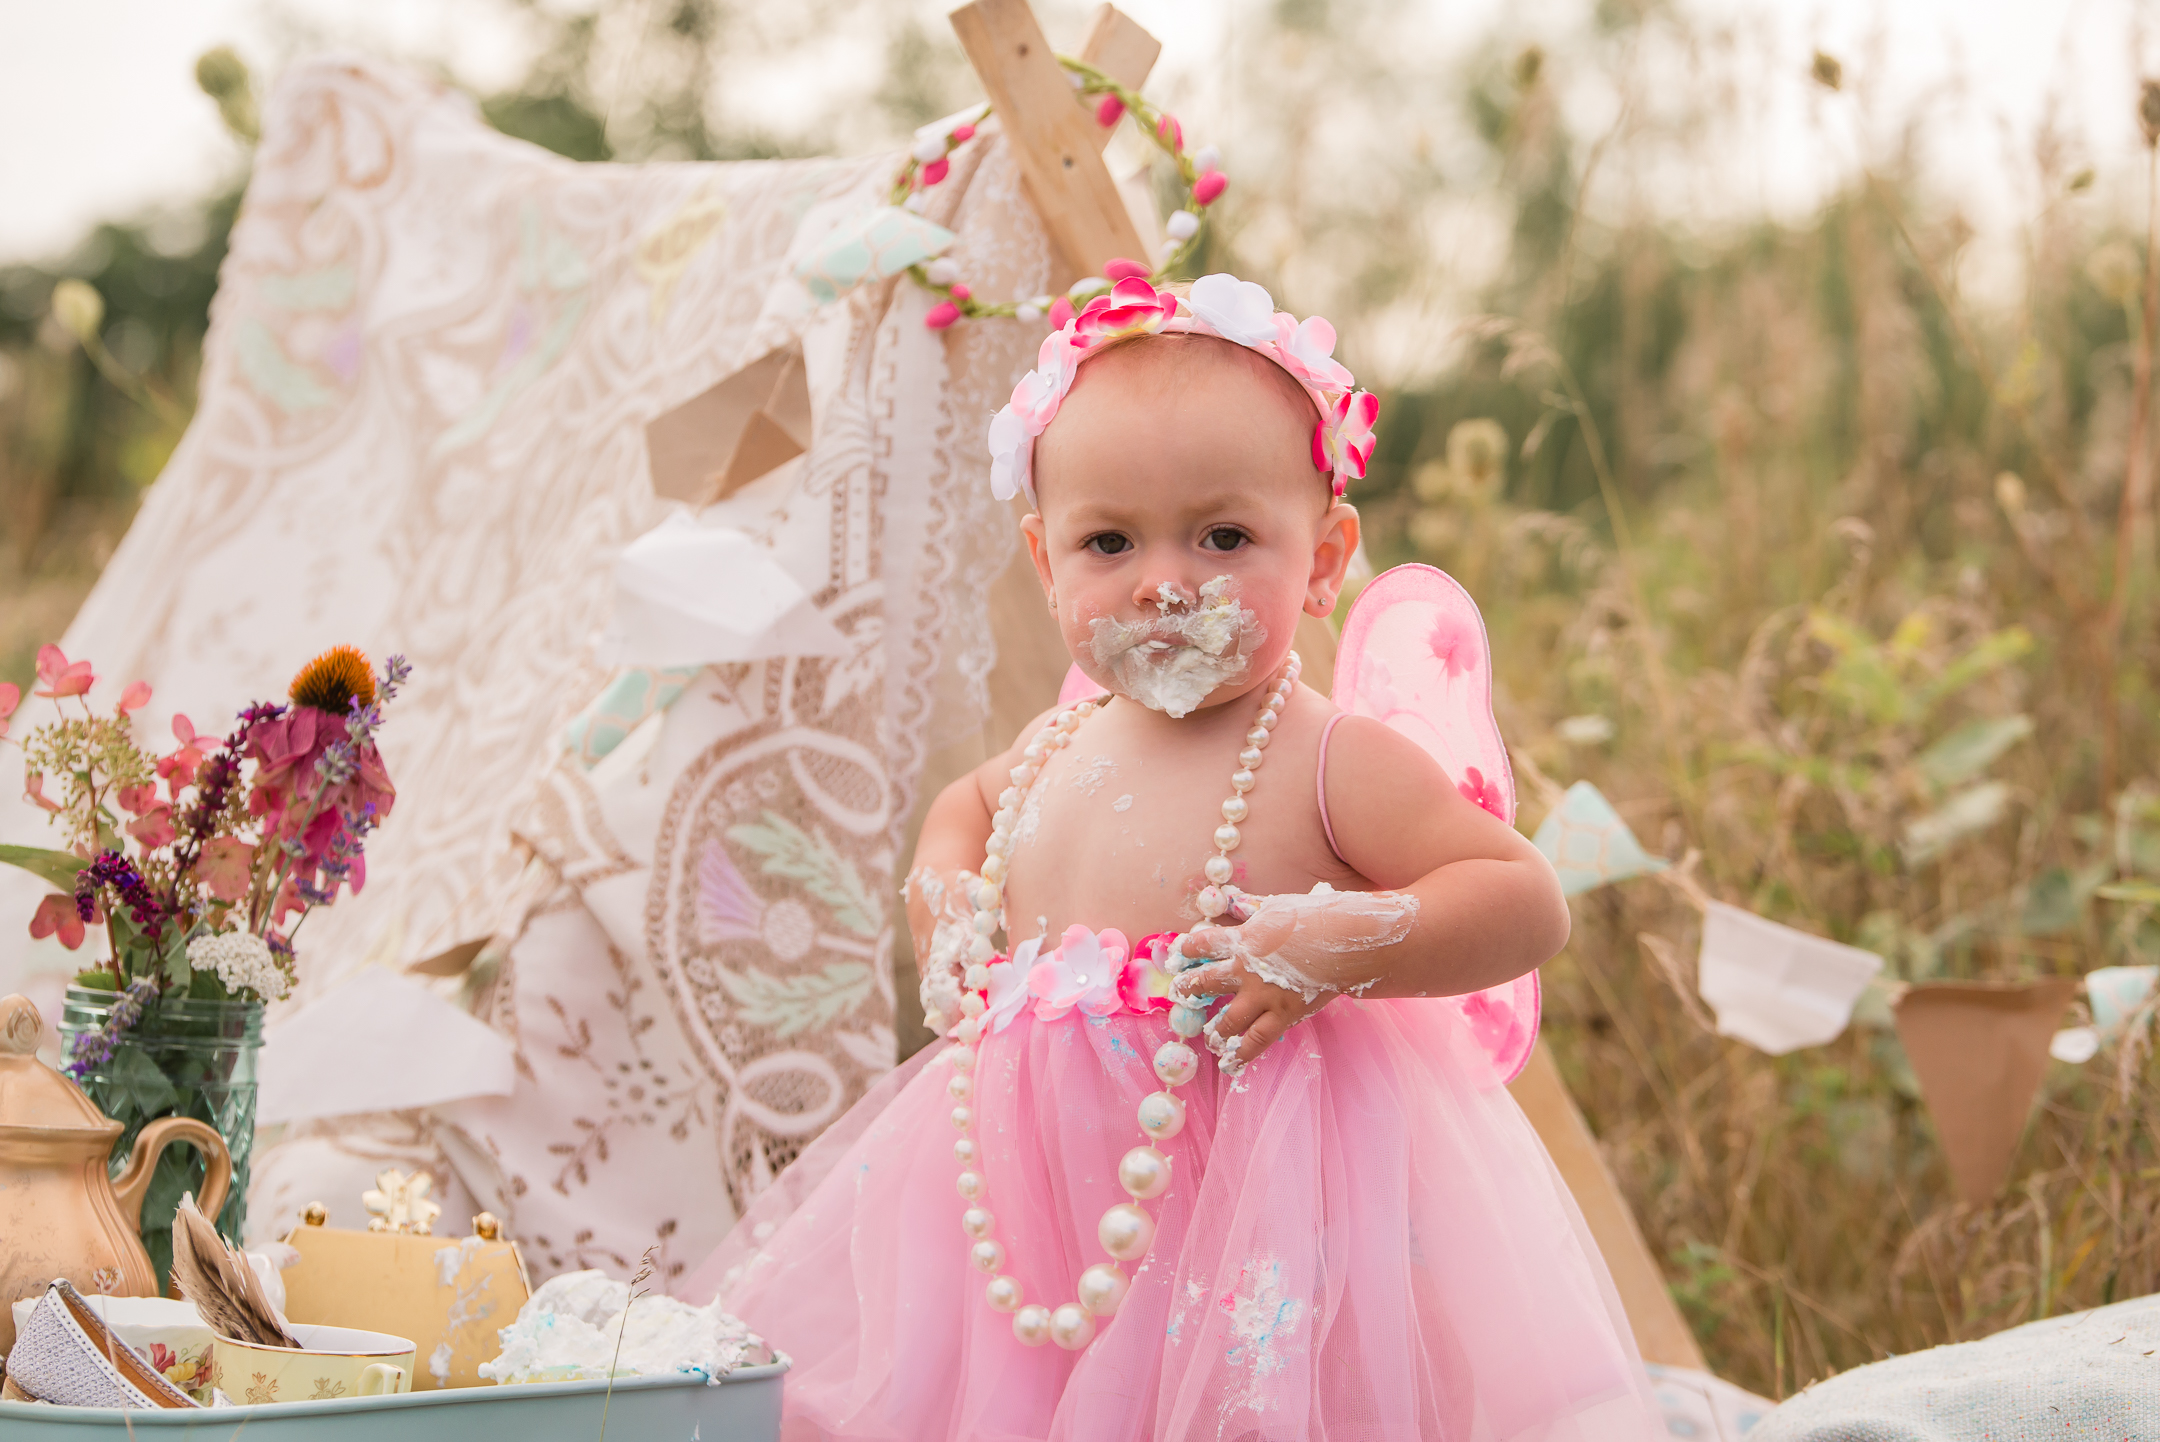 Naomi Lucienne Photography - First Birthday - 170829433.jpg